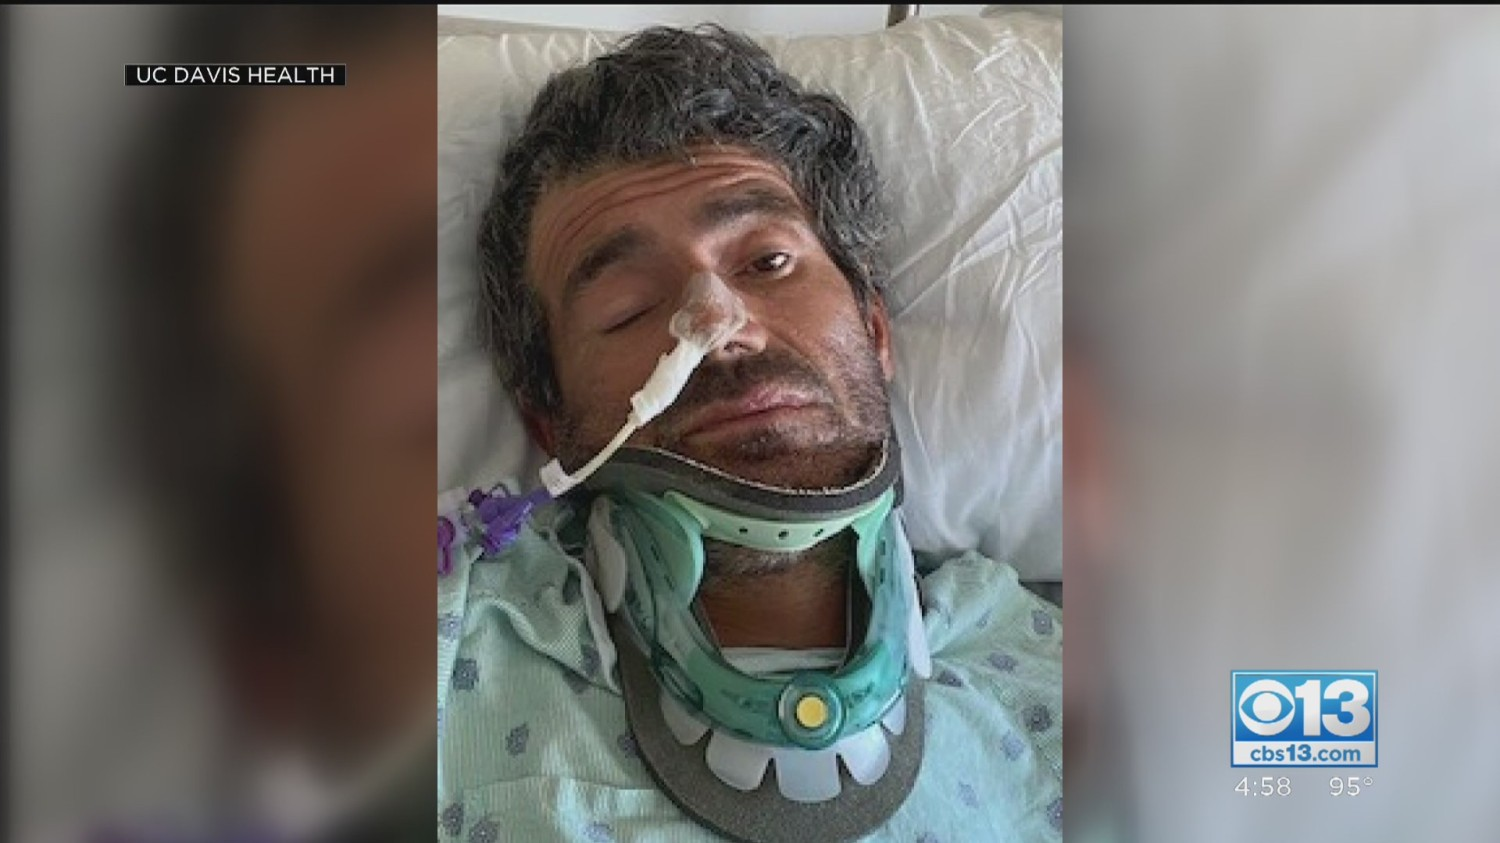 Mystery Man With Amnesia At UC Davis Med Center Identified Thanks To Community Tips